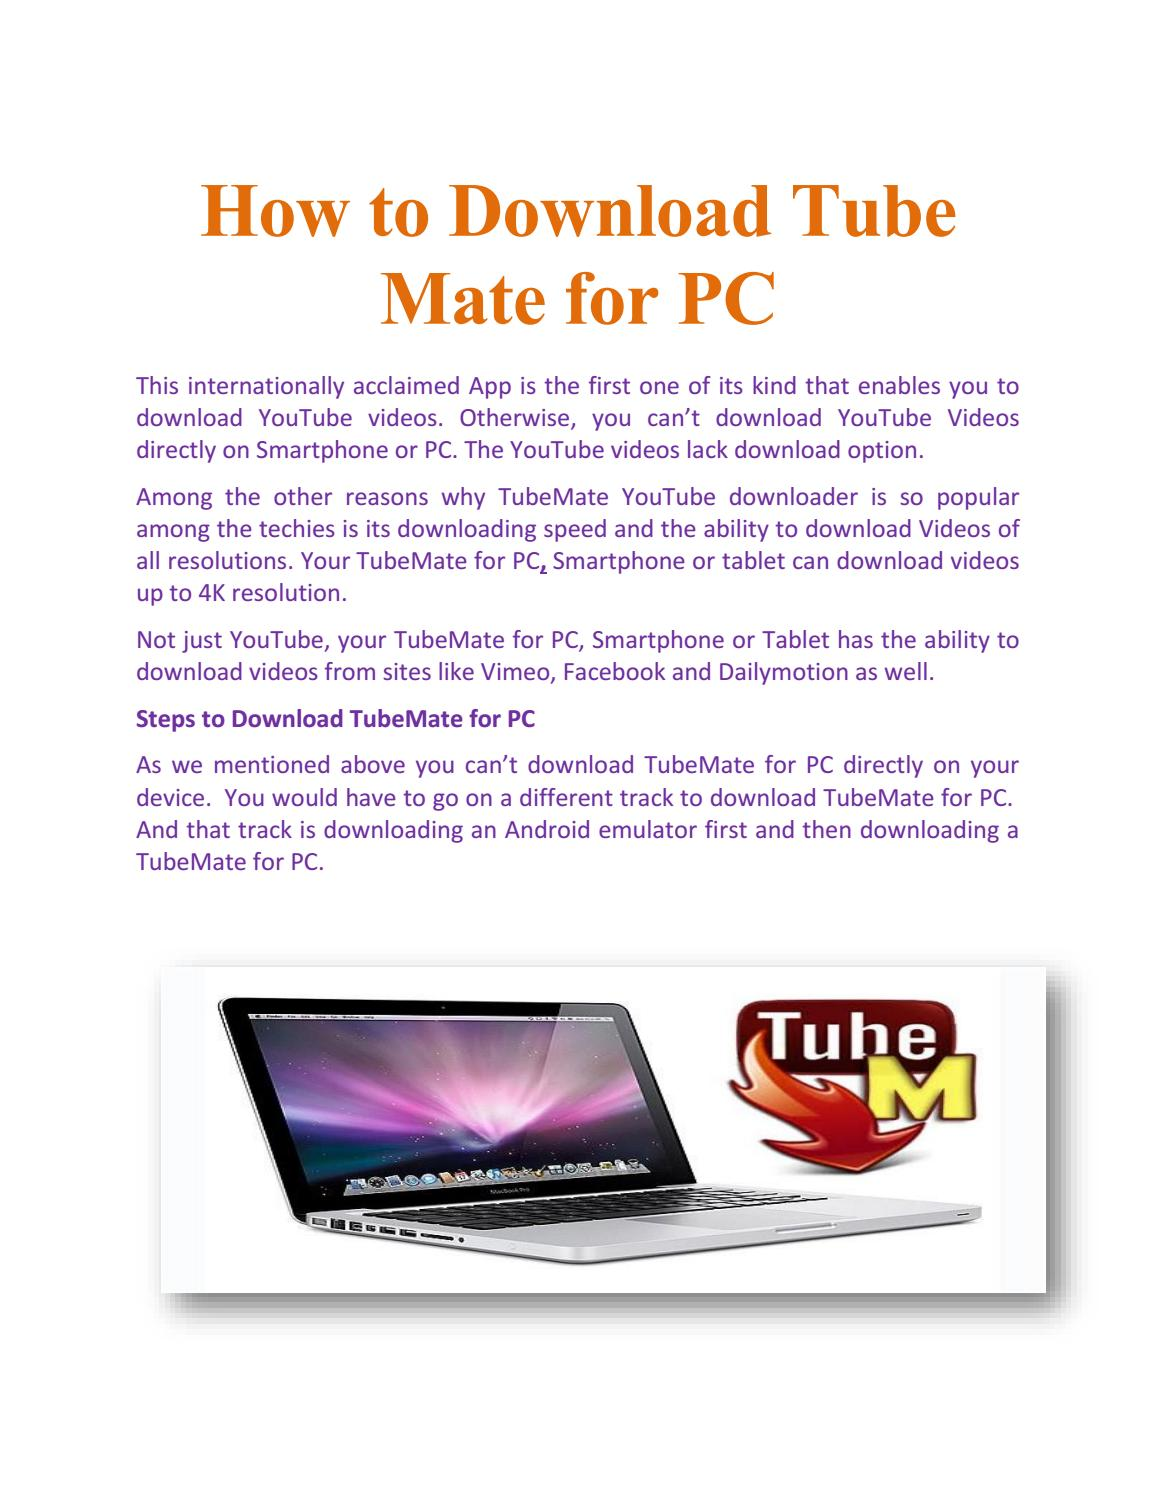 Tubemate for pc – download for faster downloading by